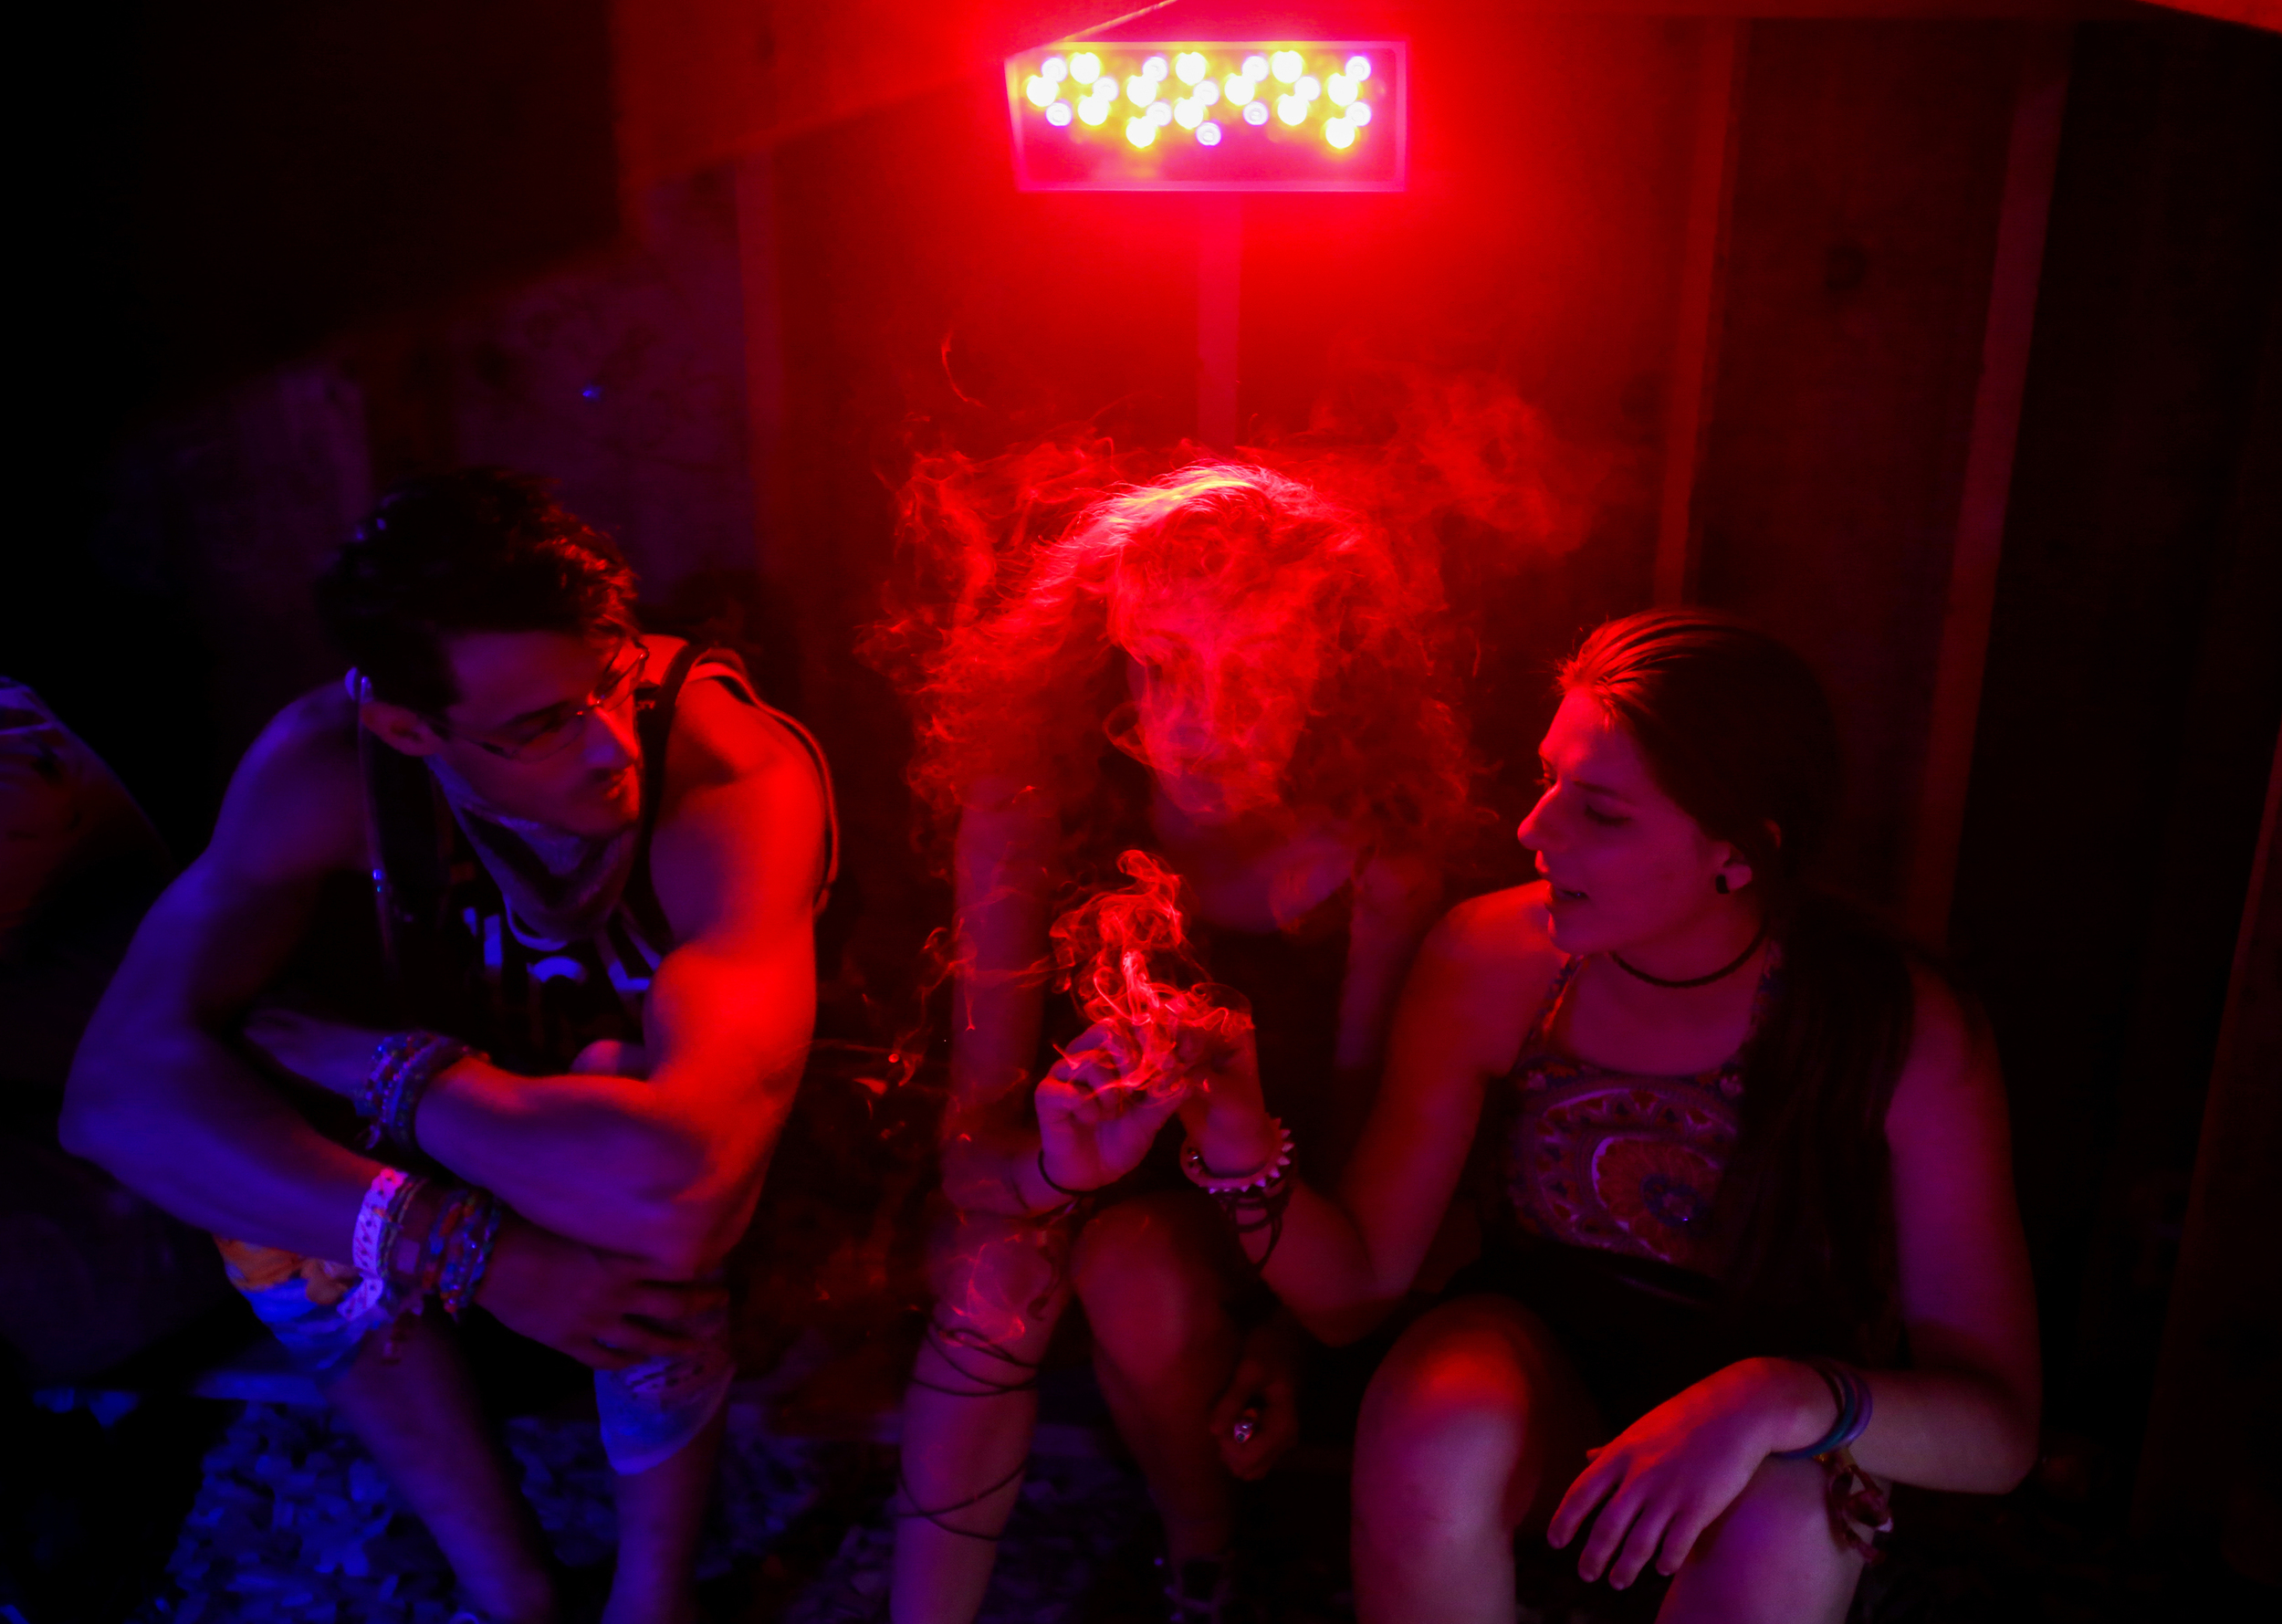 Festival goers smoke marijuana in the bottom of a four-story tree fort in the Sherwood Forest during Electric Forest on Saturday, June 27, 2015.